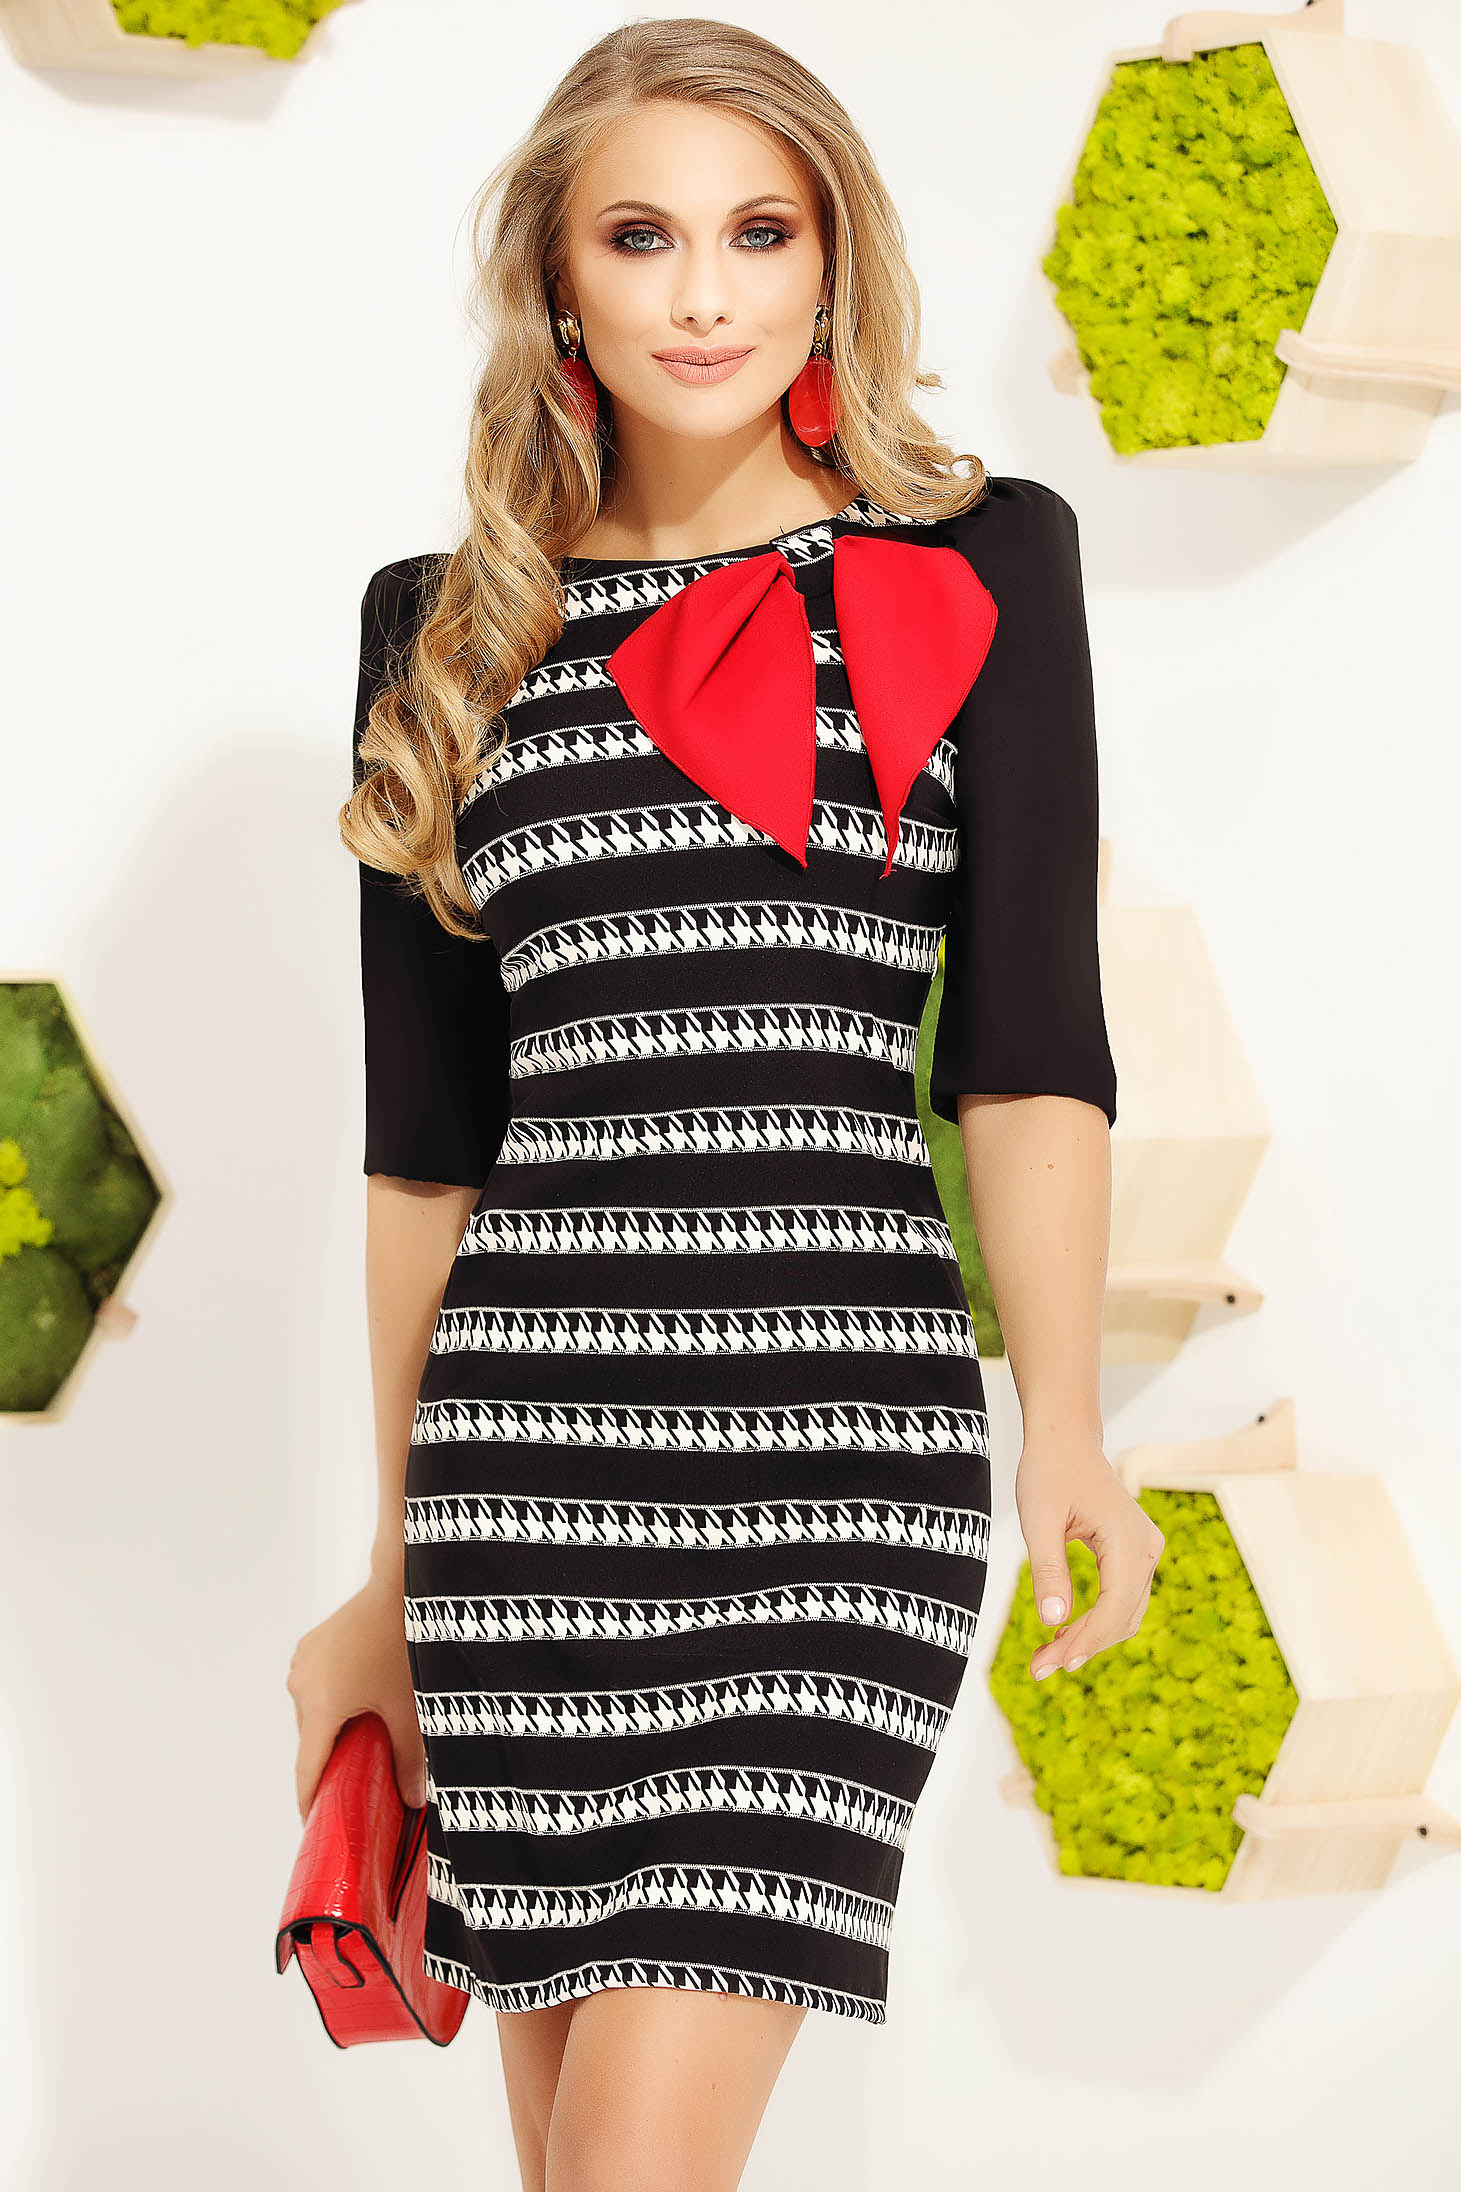 Red dress elegant short cut pencil cloth with bow with stripes